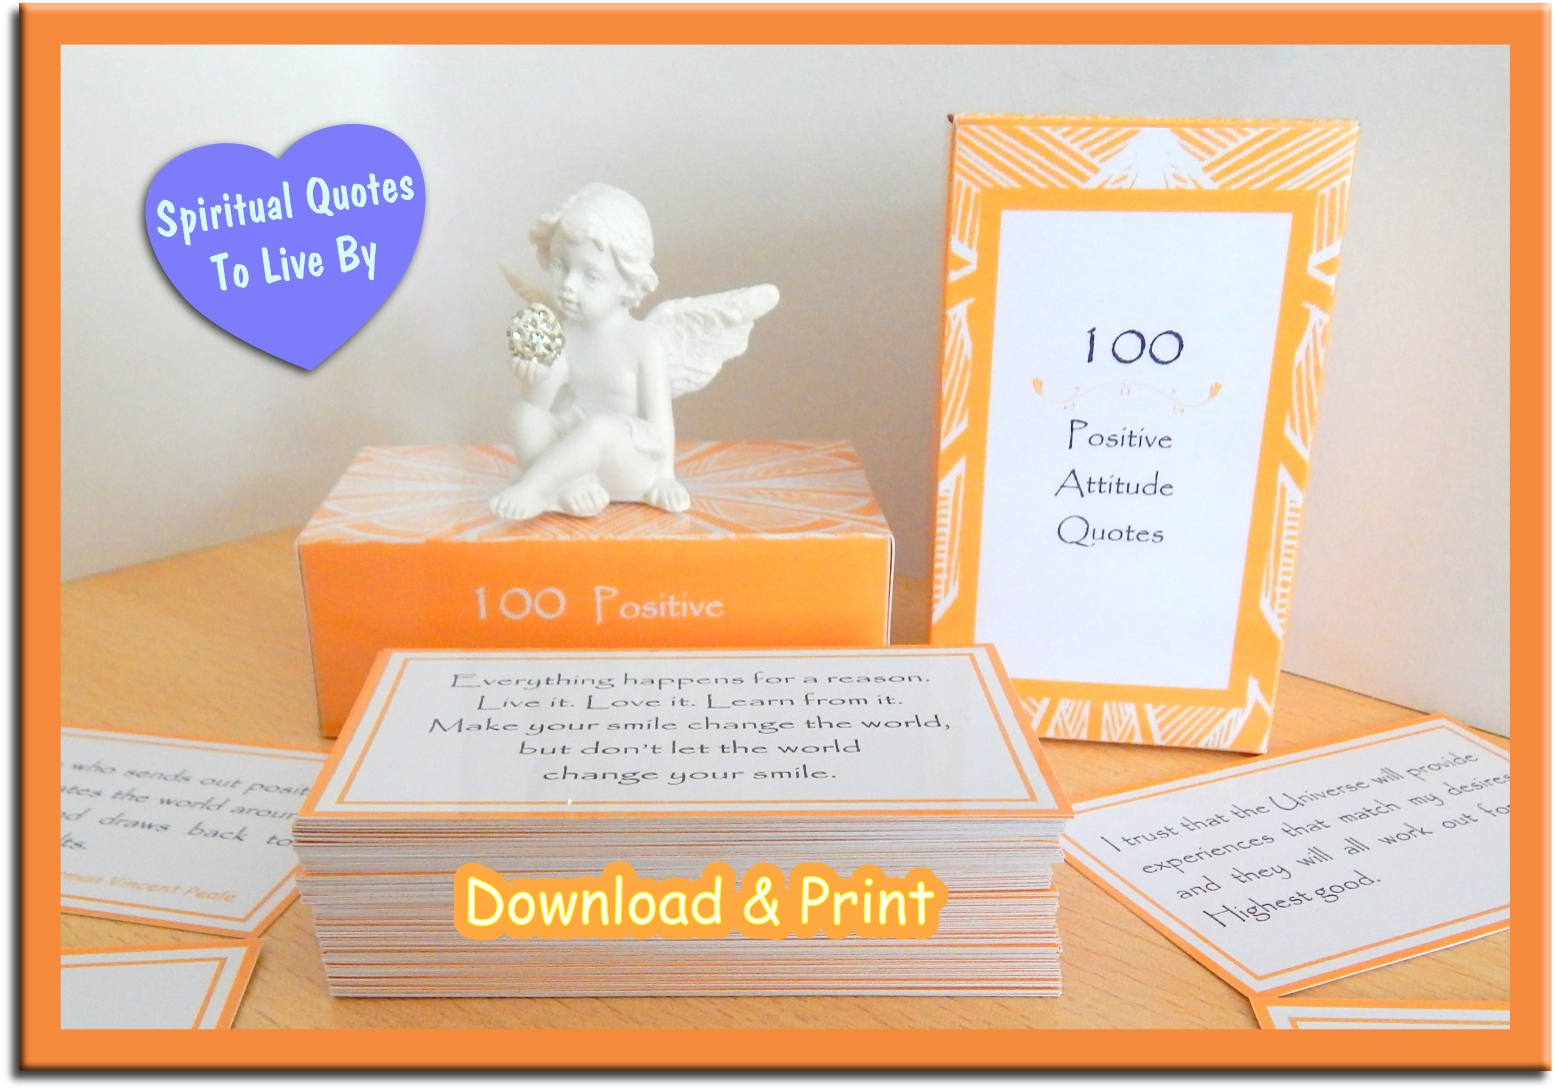 100 Positive Attitude Quote Cards to instantly download and print on Etsy - Spiritual Quotes To Live By